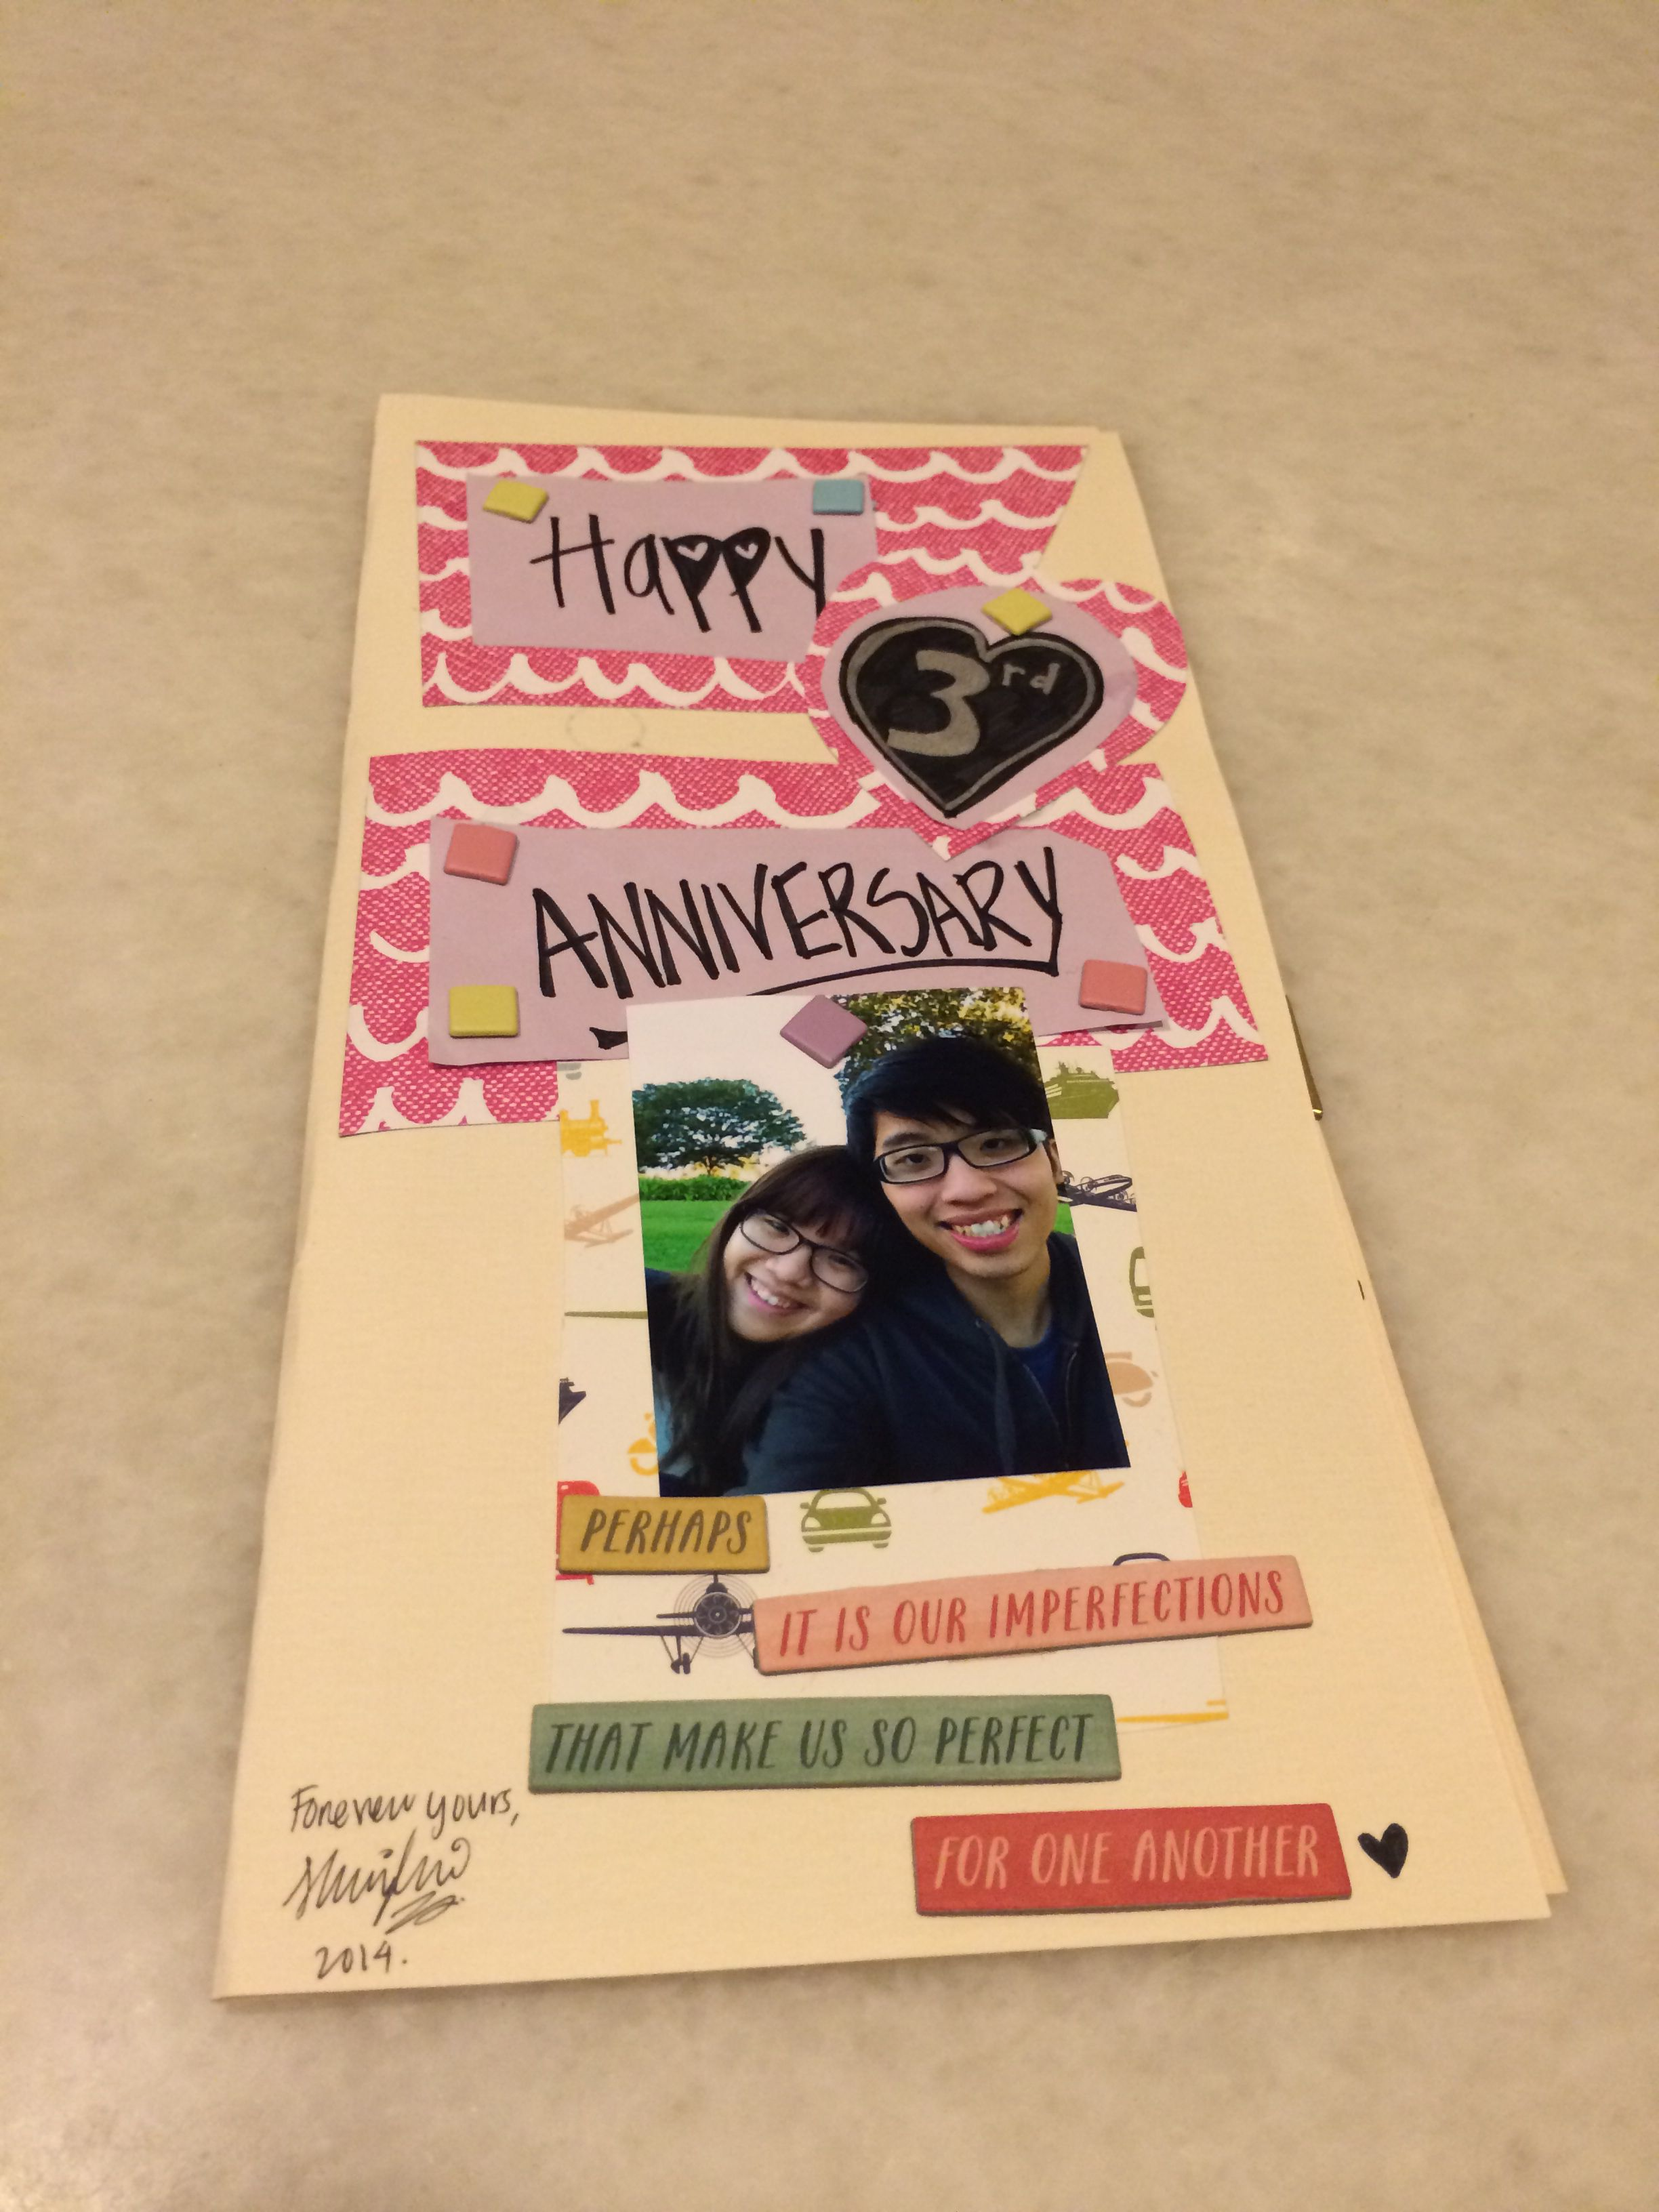 This is a card for our 3rd anniversary, coming up on 15